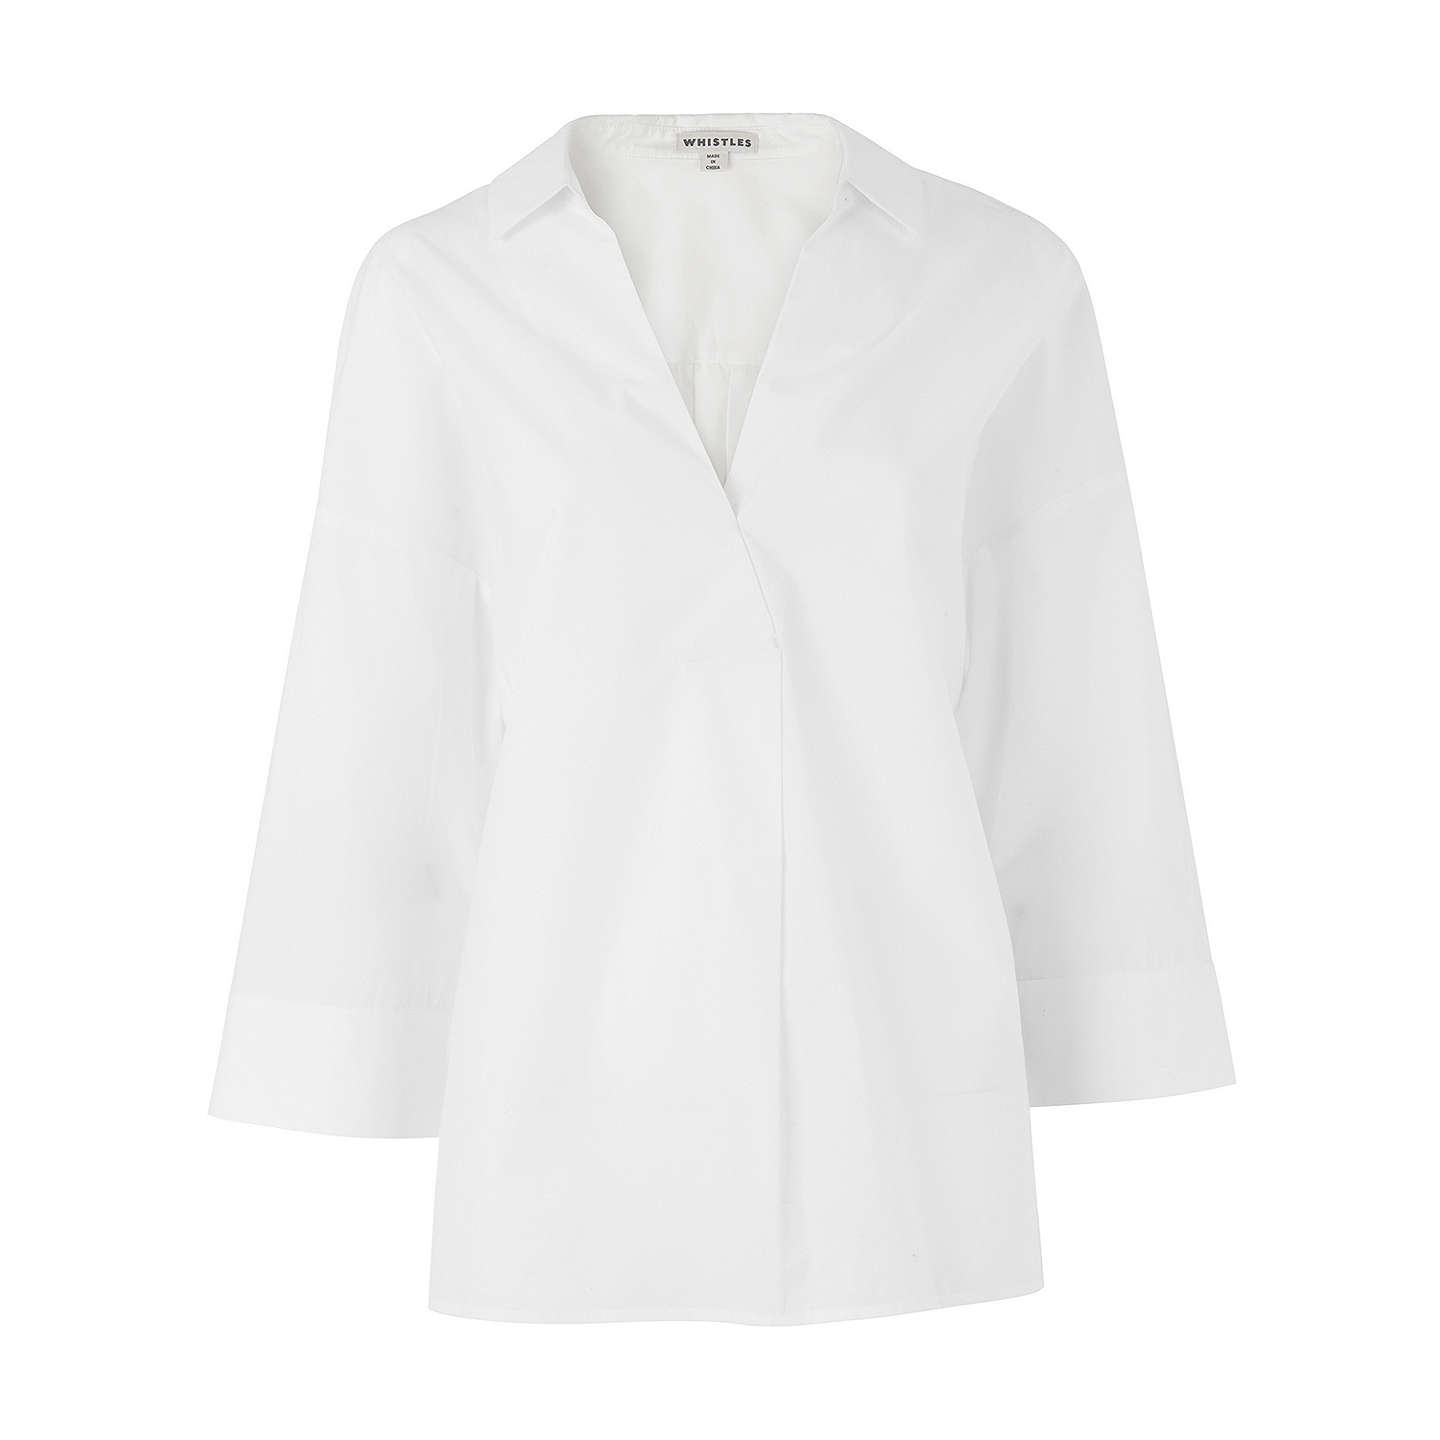 BuyWhistles Lola Shirt, White, XS Online at johnlewis.com